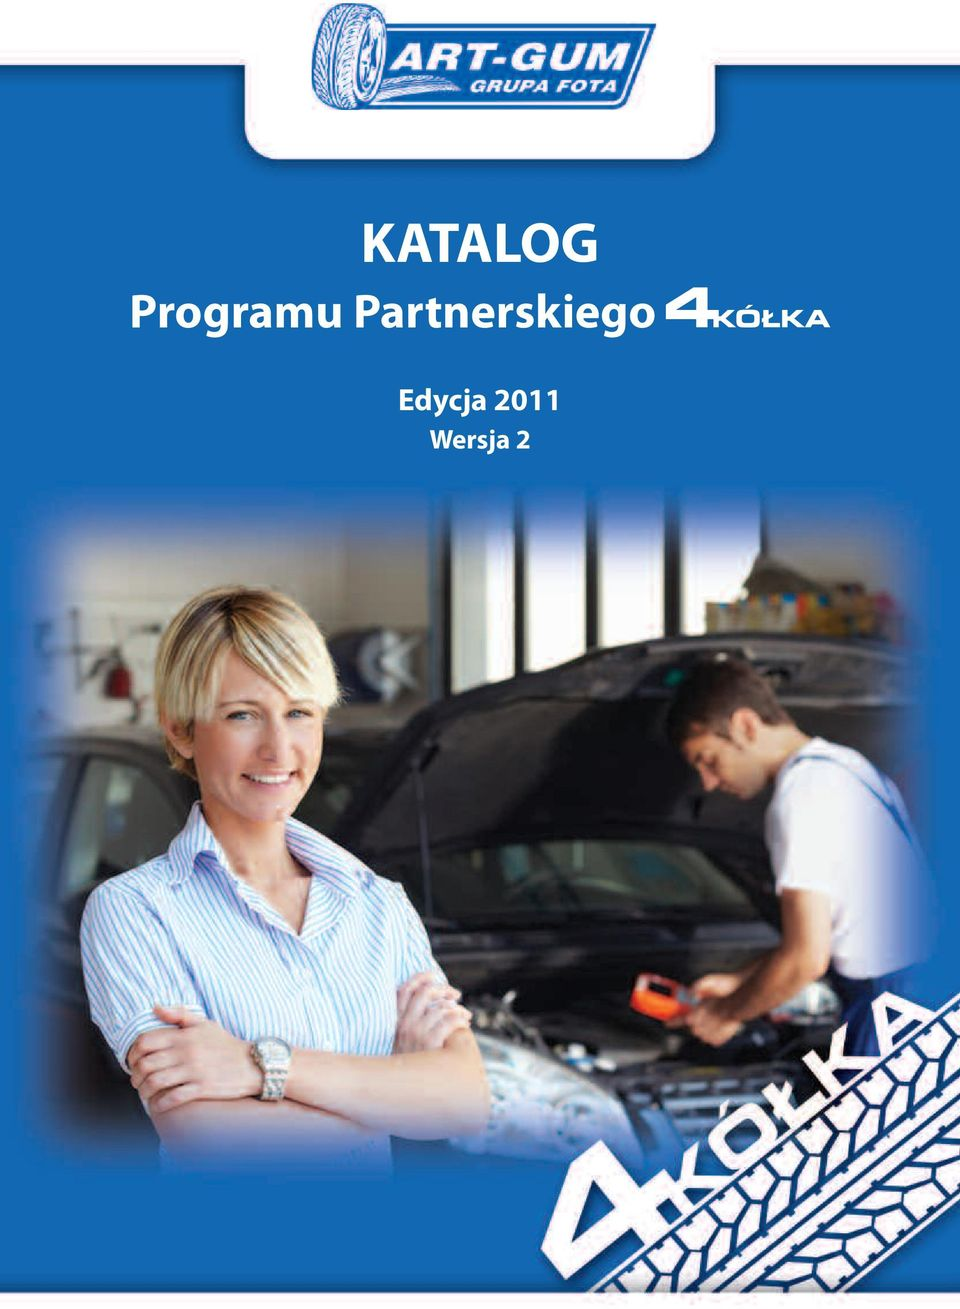 PROGRAM KATALOG PARTNERSKI